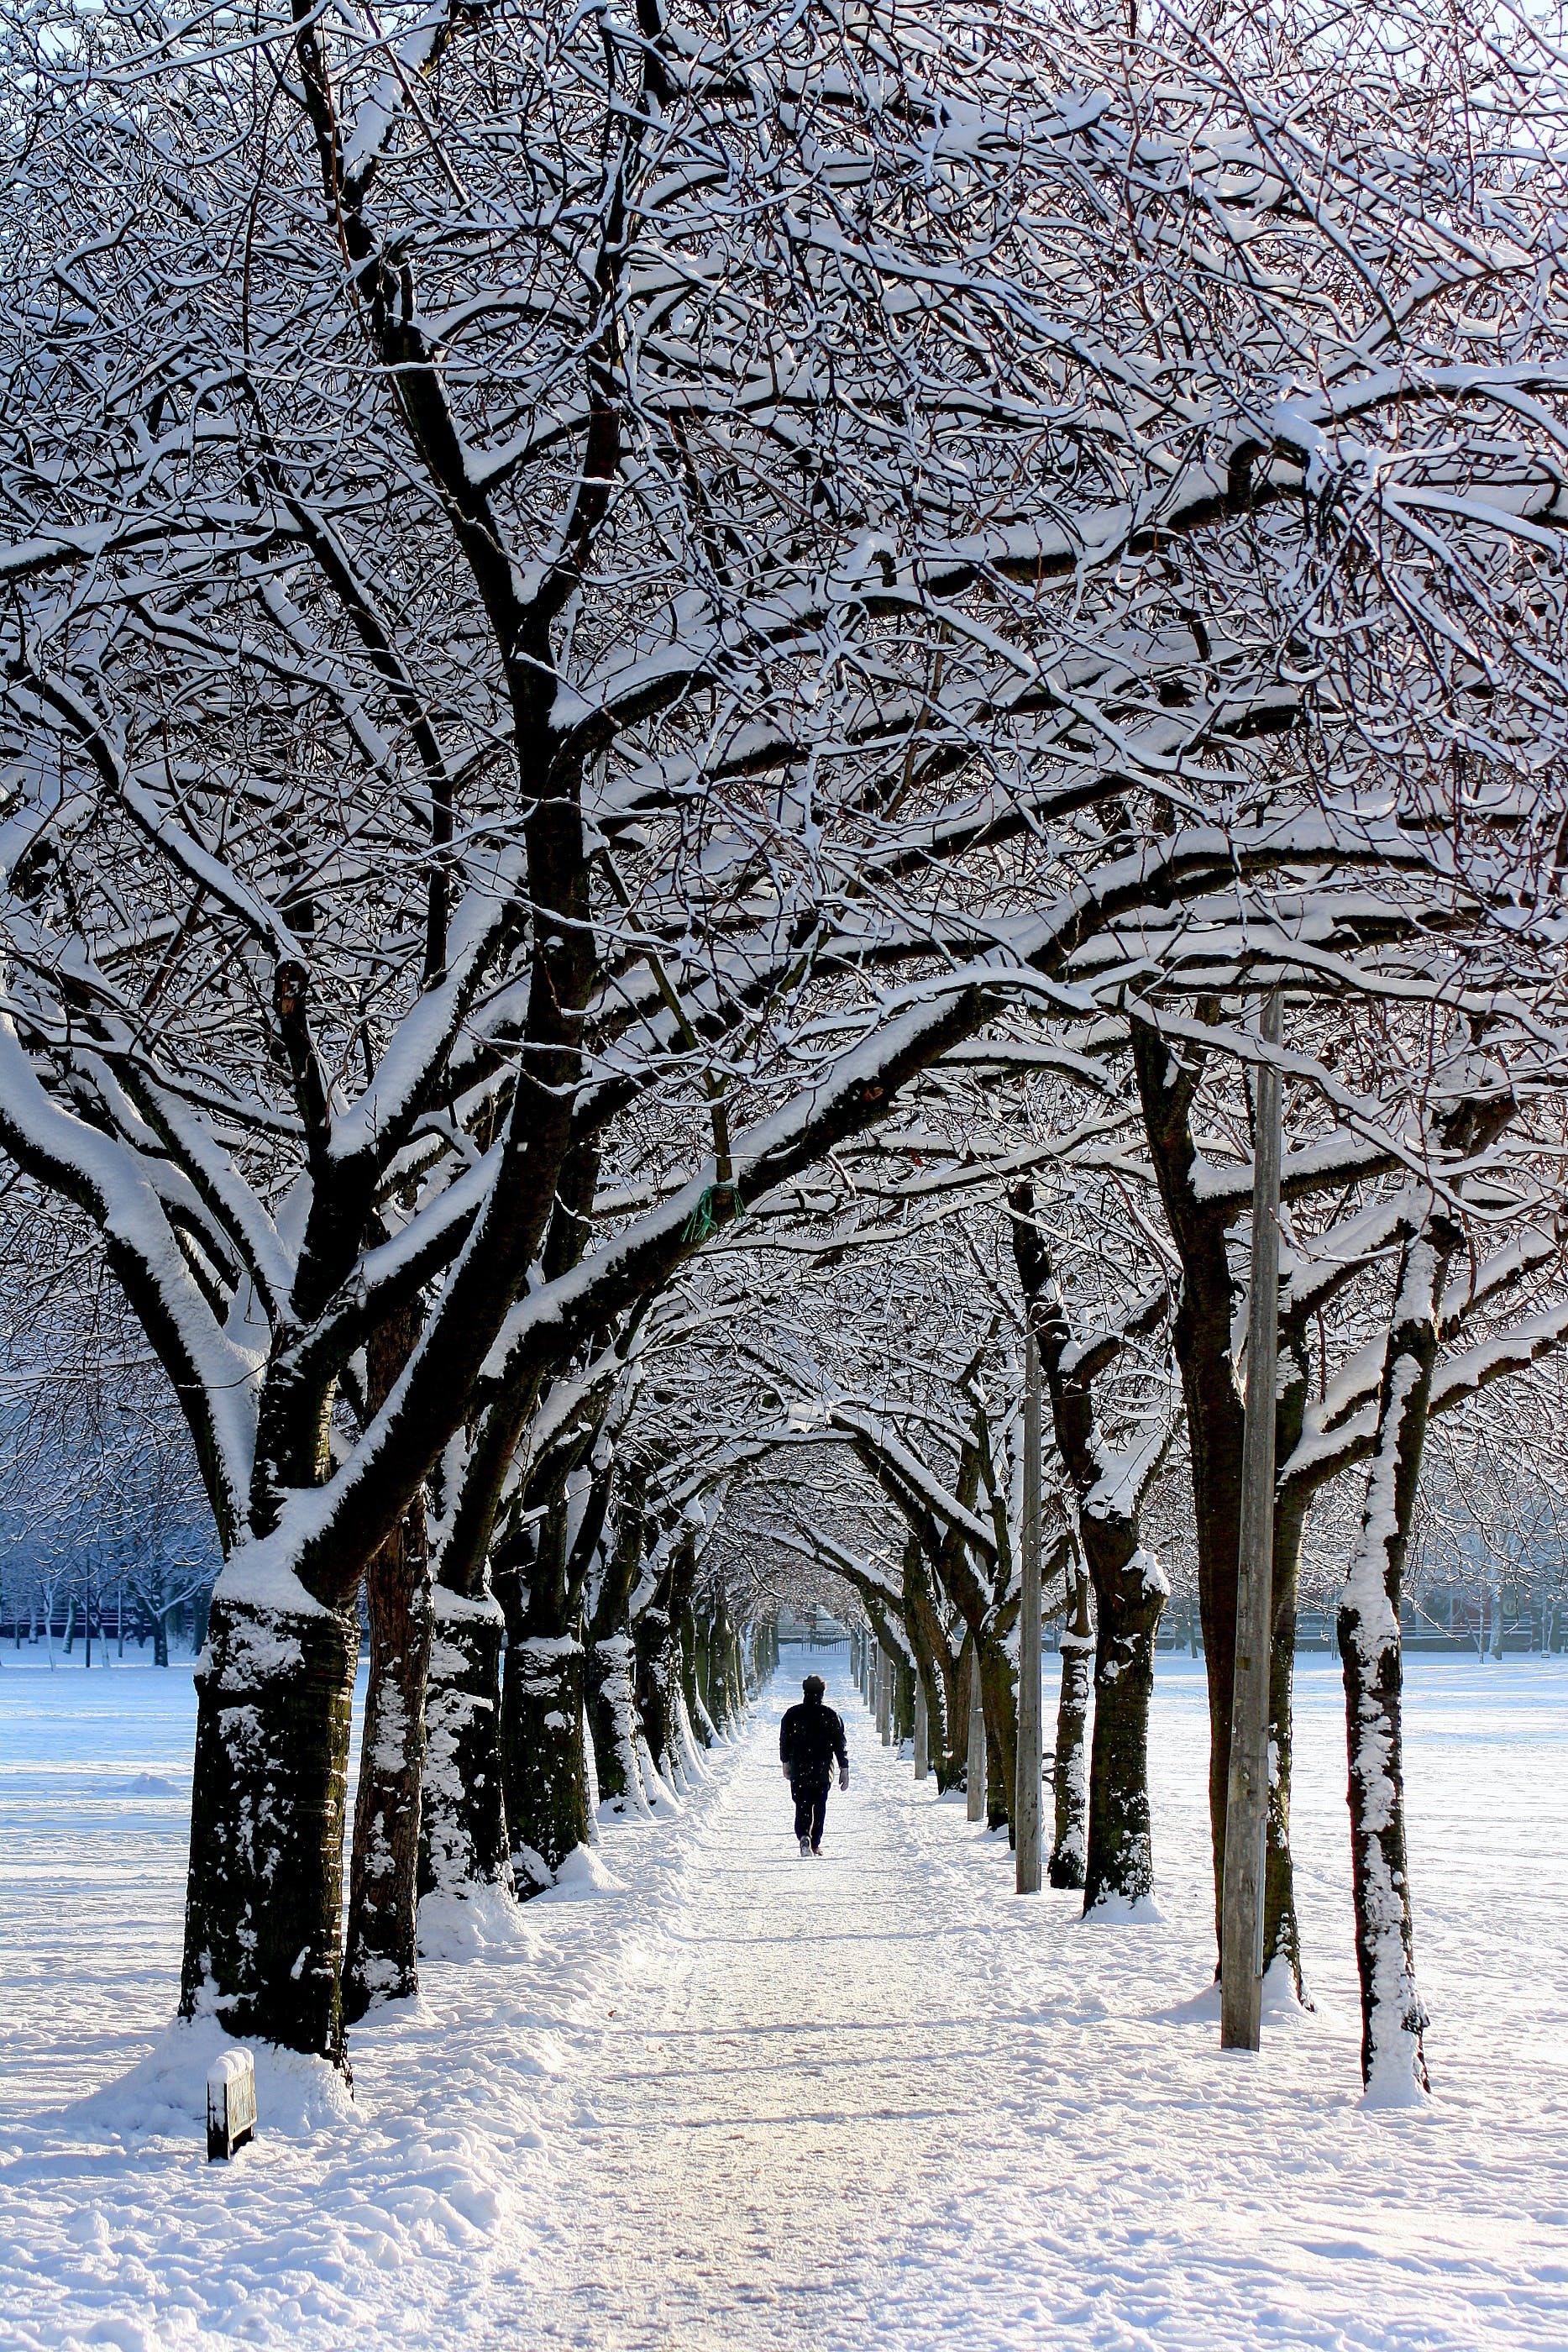 Man in Black Jacket Walking on Snowy Tree during Daytime